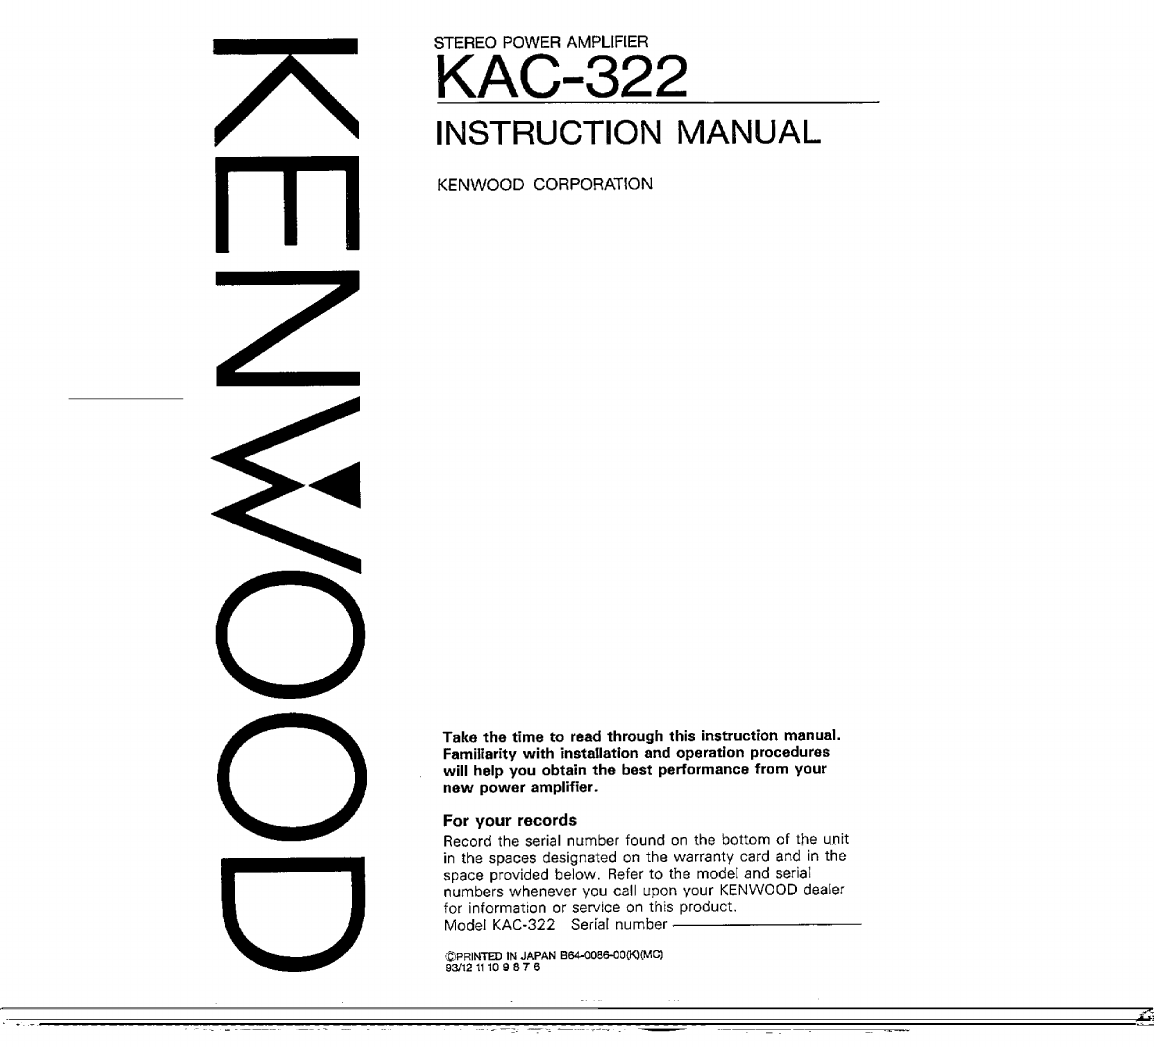 Kenwood Kdc 322 Wiring Diagram 30 Images Amplifier 83b11ac8 8eb9 5224 7112 D93ad8dc1fe2 Bg1 Stereo Kac User Guide Manualsonline Com